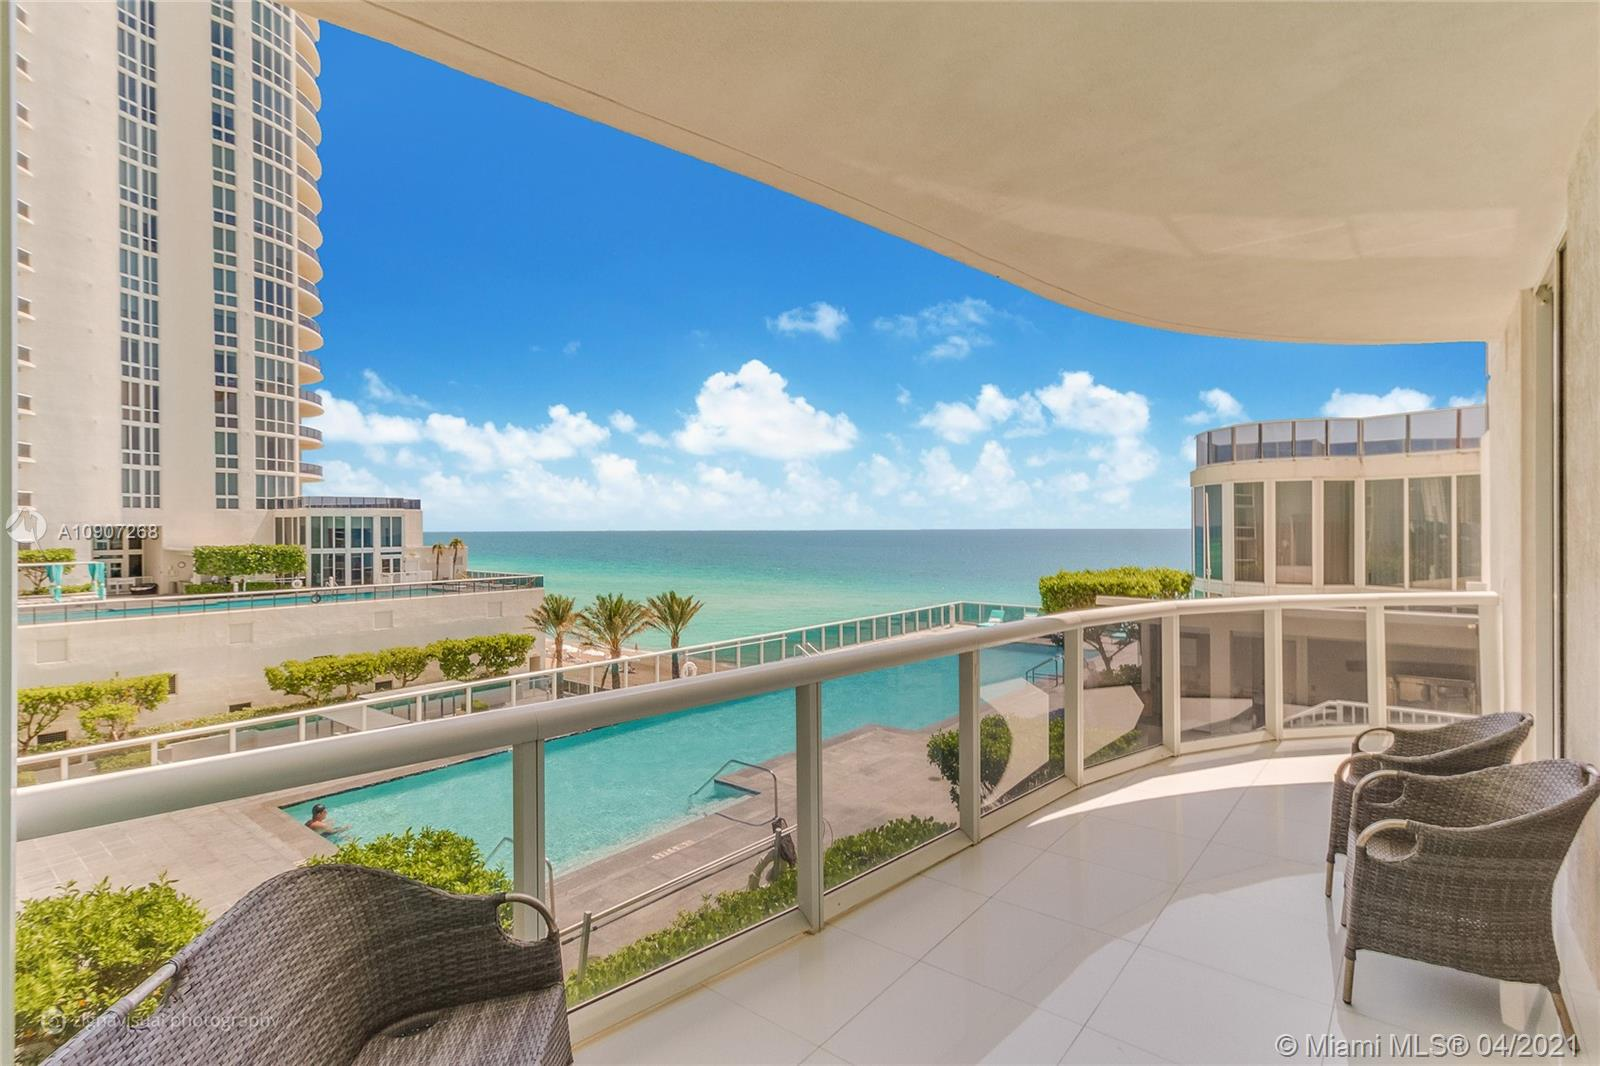 This unit is leased until 8/9/21.   Private lobby leads into your residence & Stunning floor to ceiling Ocean views. Beautifully furnished. 2 Large balconies, European cabinetry w/built in coffeemaker. Full Service Spa & Fitness. On site restaurant at Towers and Full beach service. Minutes to Aventura Mall/Bal Harbour Shops & Miami/Ft Lauderdale airports Most convenient of locations. The world flocks to Miami to live in this tropical oasis. Read Broker remarks!!